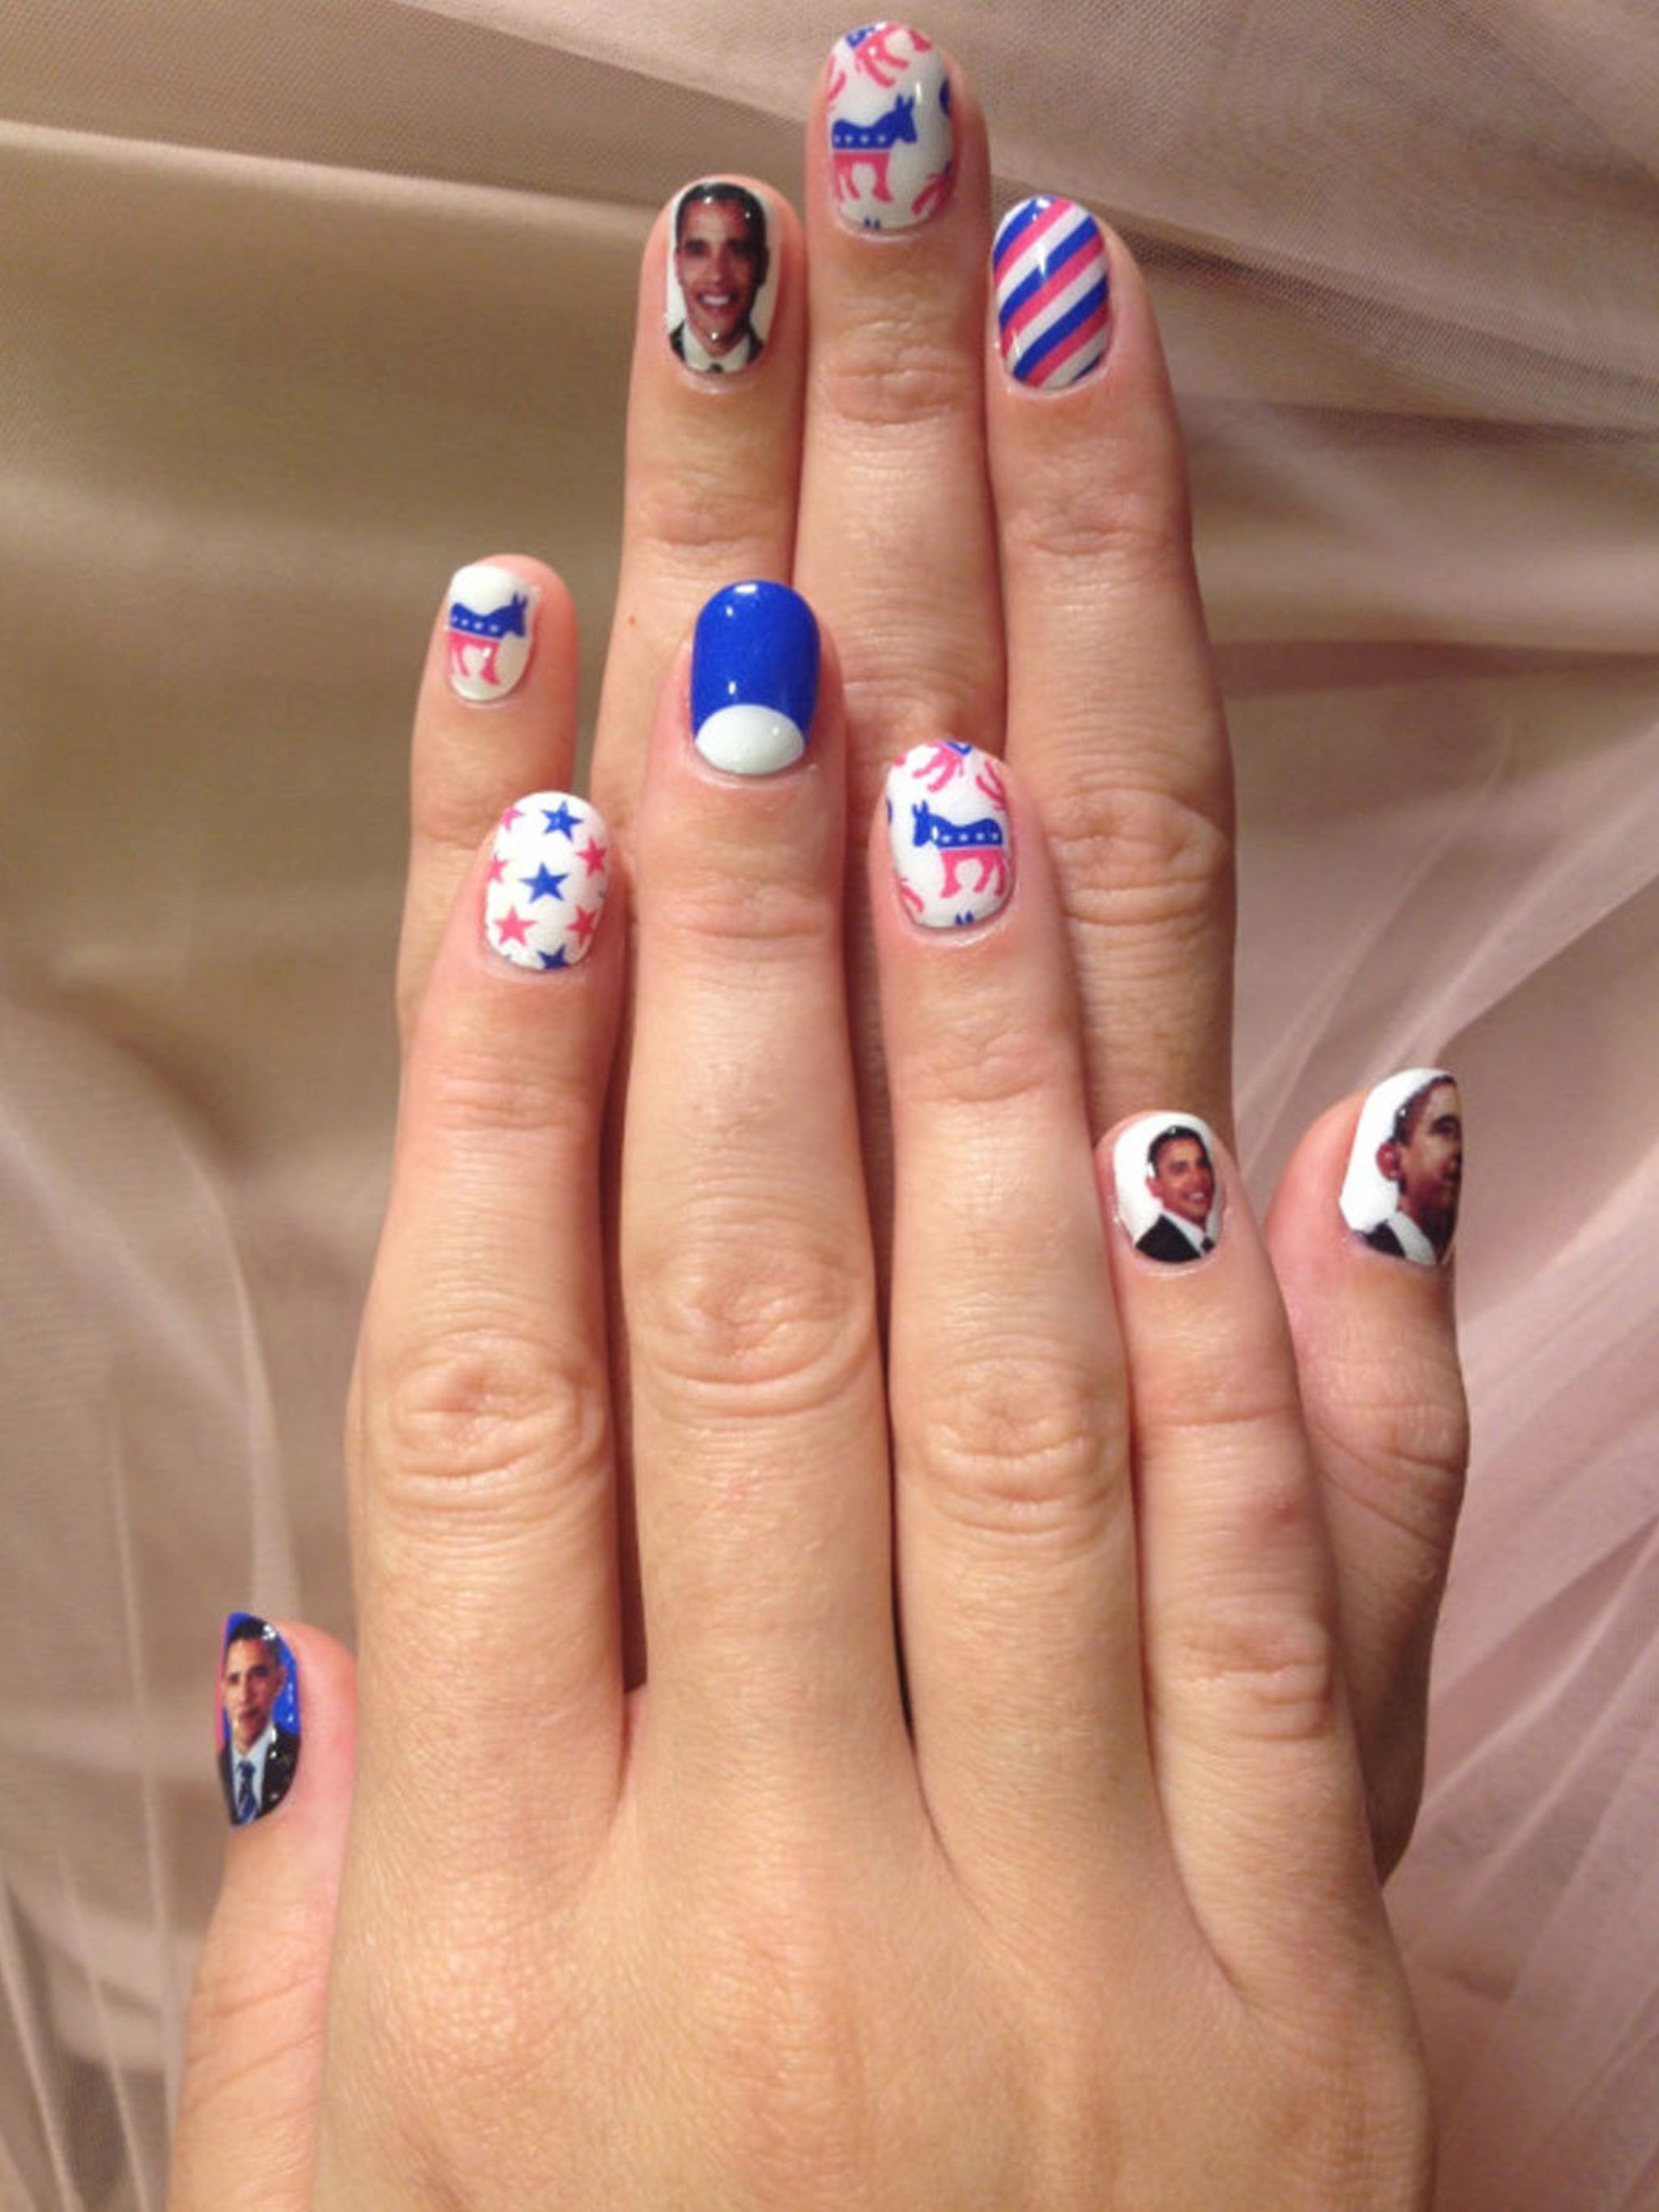 Katy Perrys Barack Obama And Stars And Stripes Nail Art Manicure In